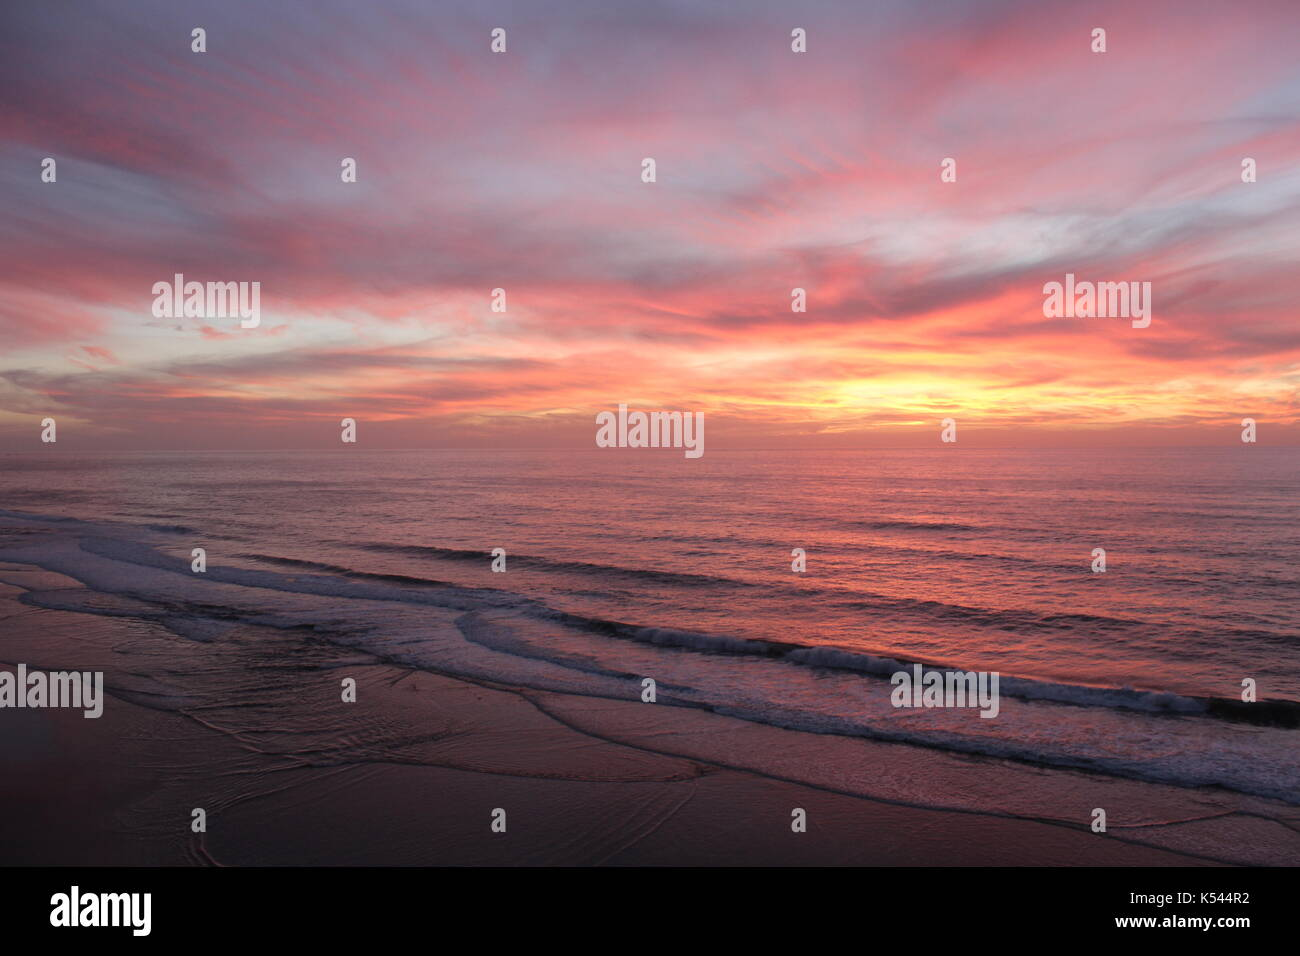 Stunning sunset on a road trip down the coast of California - Stock Image